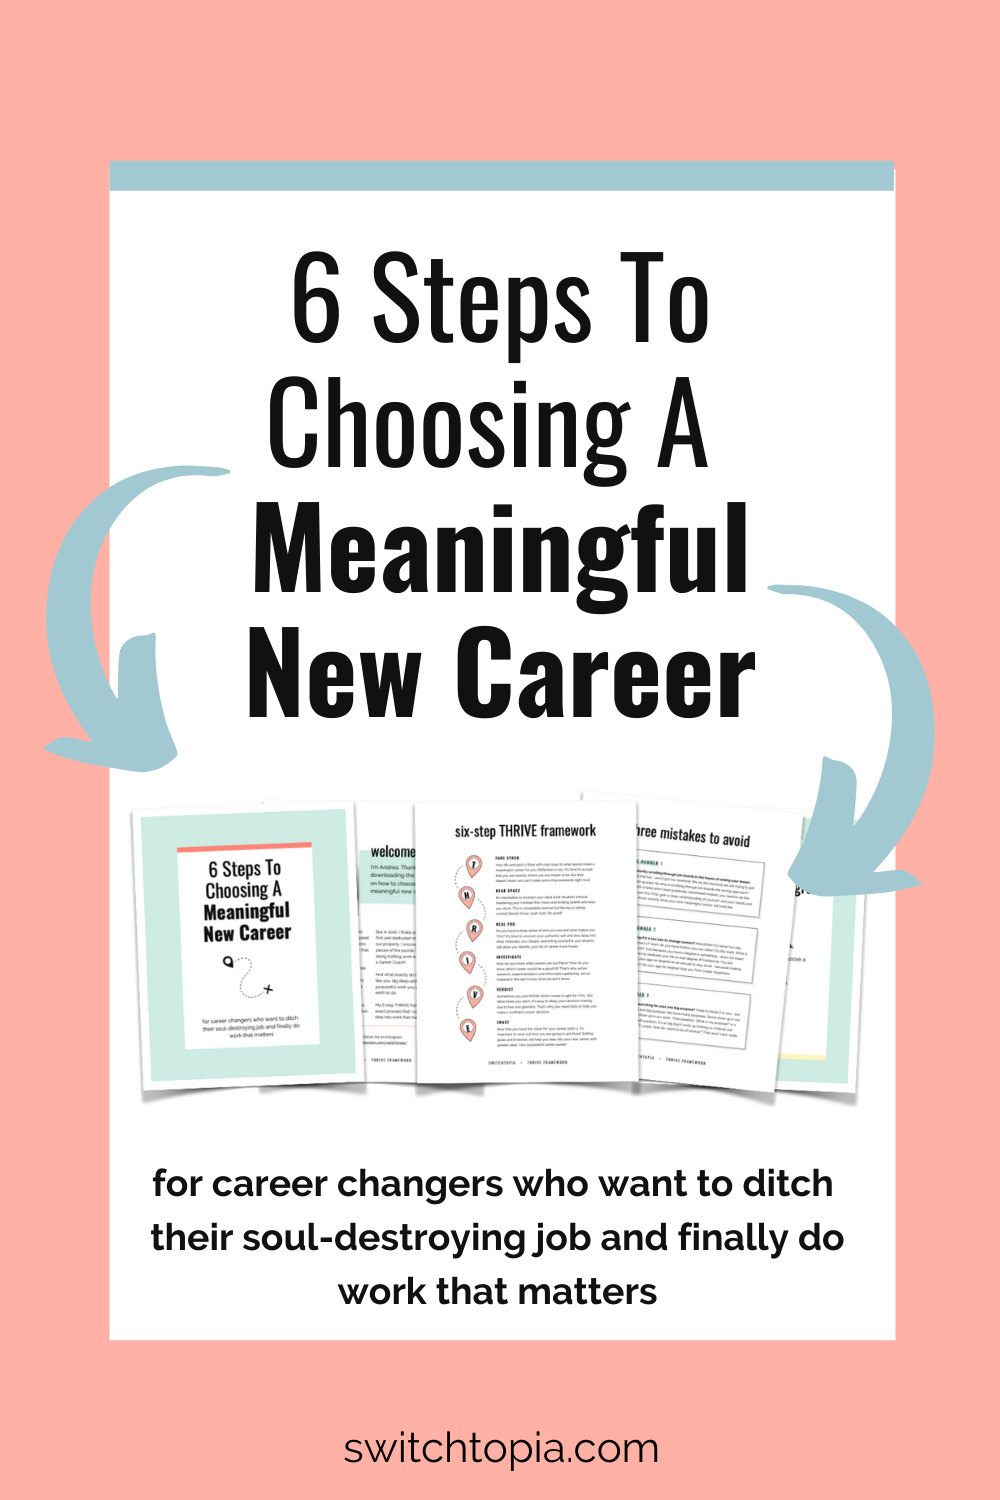 Ready for a career change? Wanting to find purpose? Download the 6 Steps To A Meaningful New Career PDF. You'll learn the exact steps I took to decide on my new and purposeful career and change careers. Enter your name and email to download the PDF.